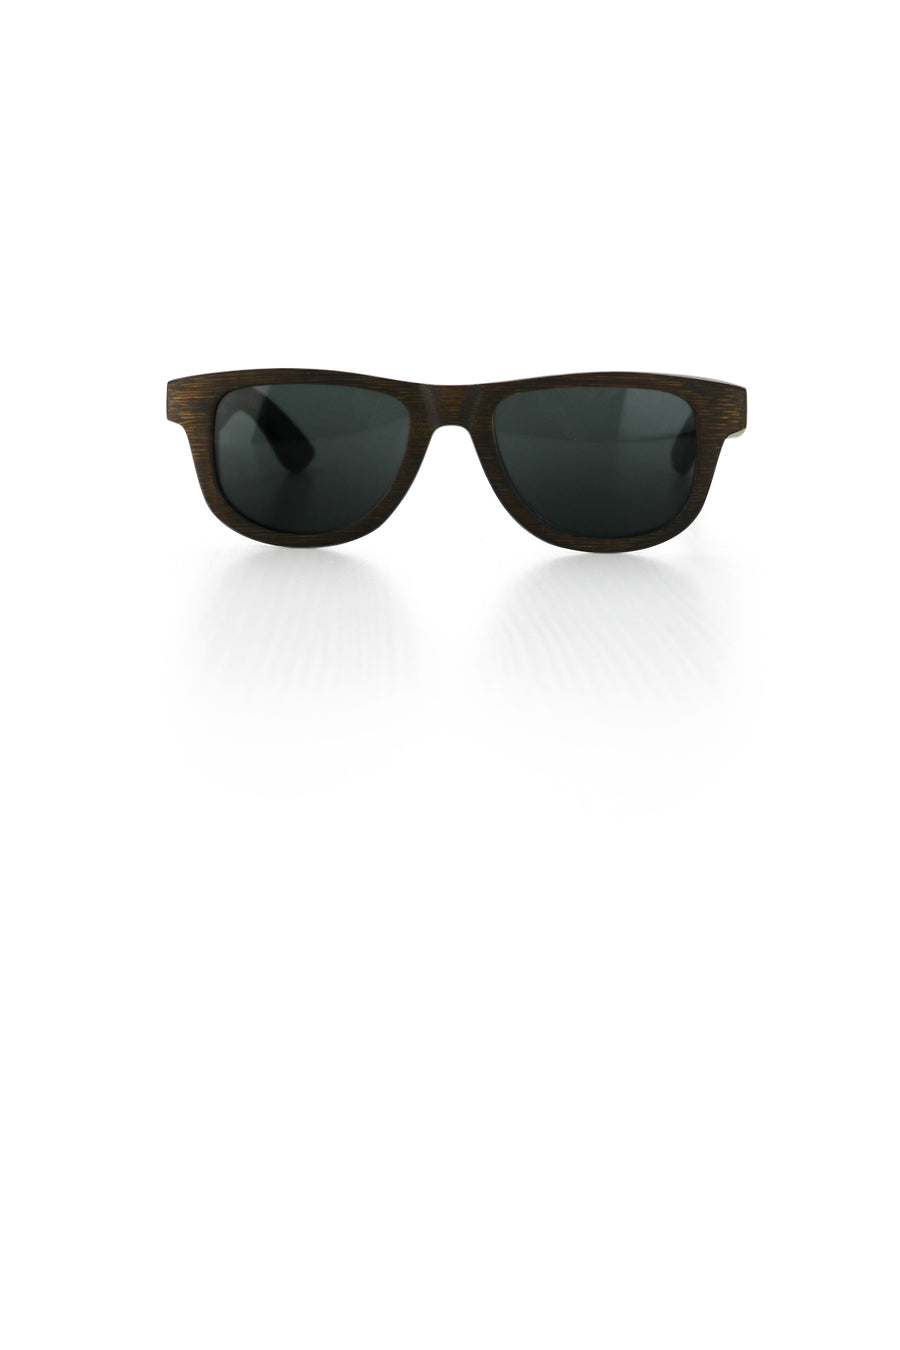 Brown Bamboo Sunglasses - Bailey Ted and Lemon side